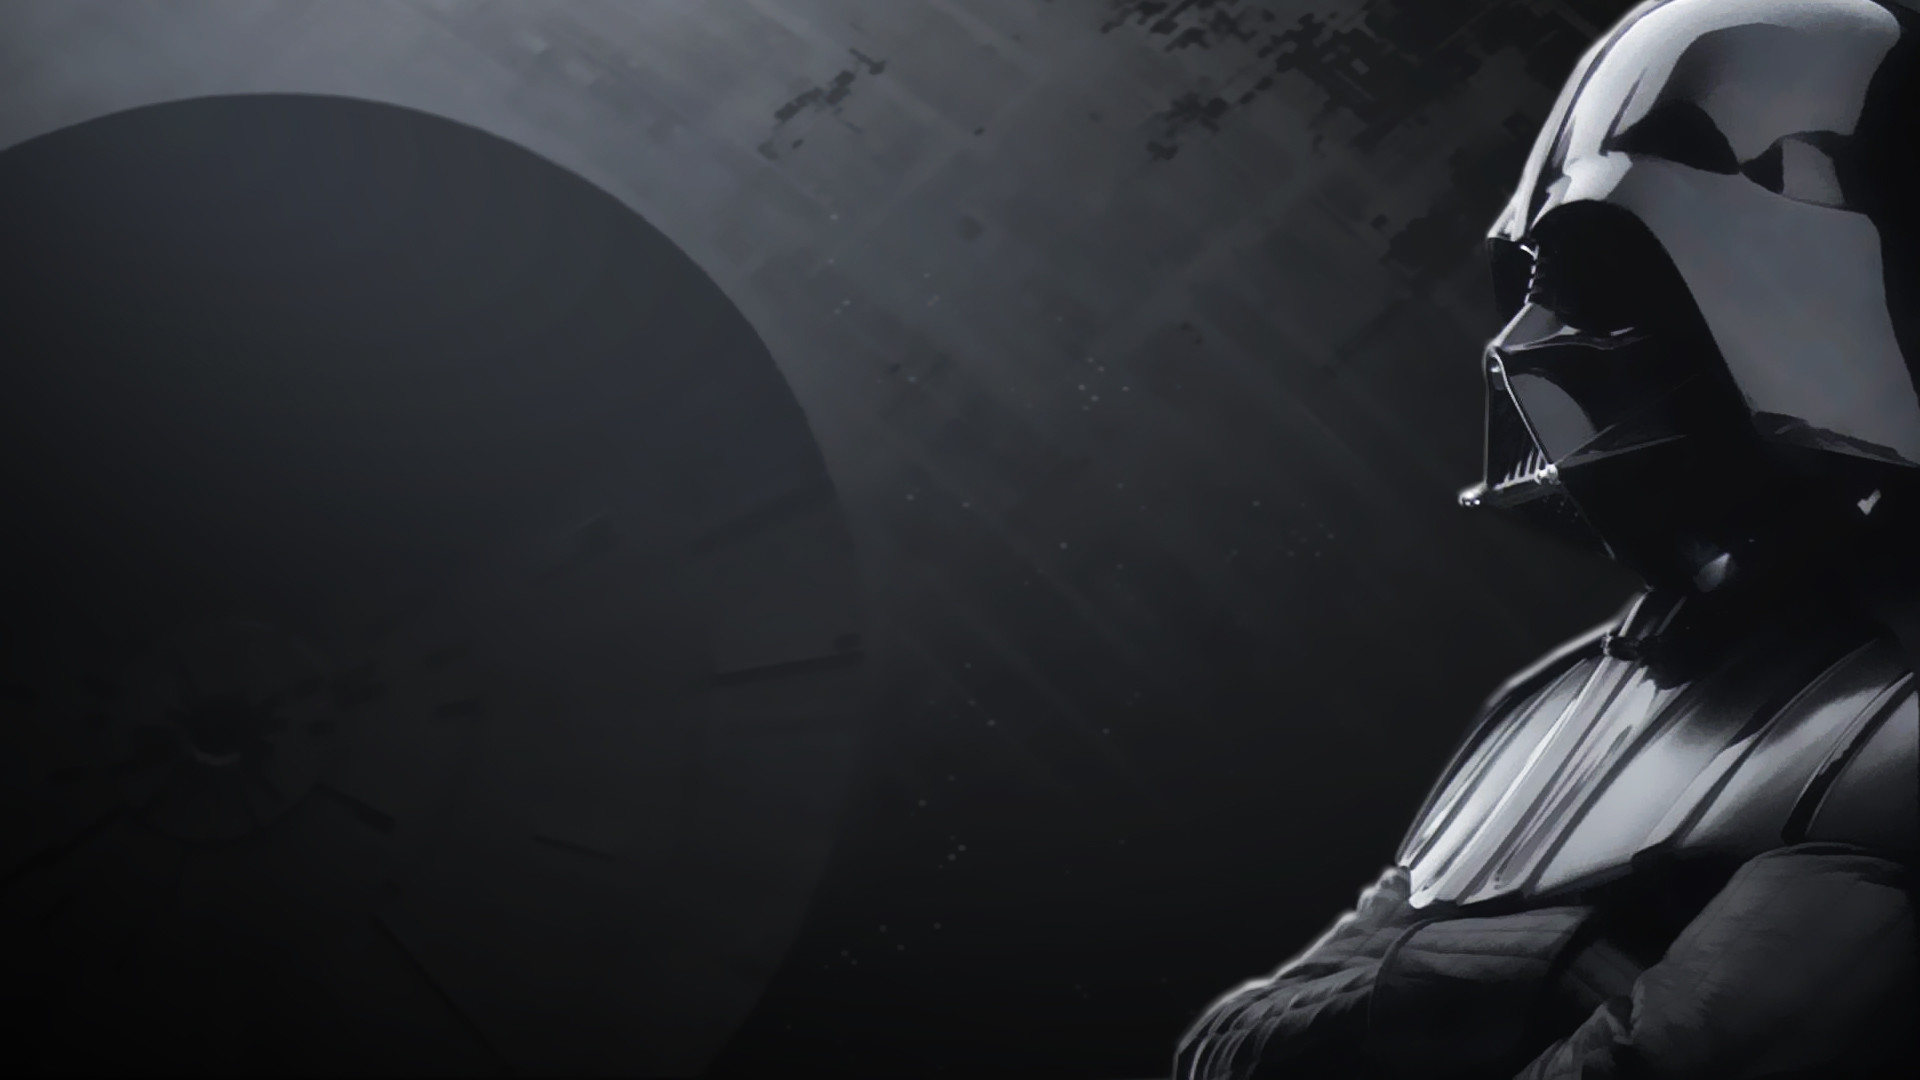 Some Darth Vader wallpapers